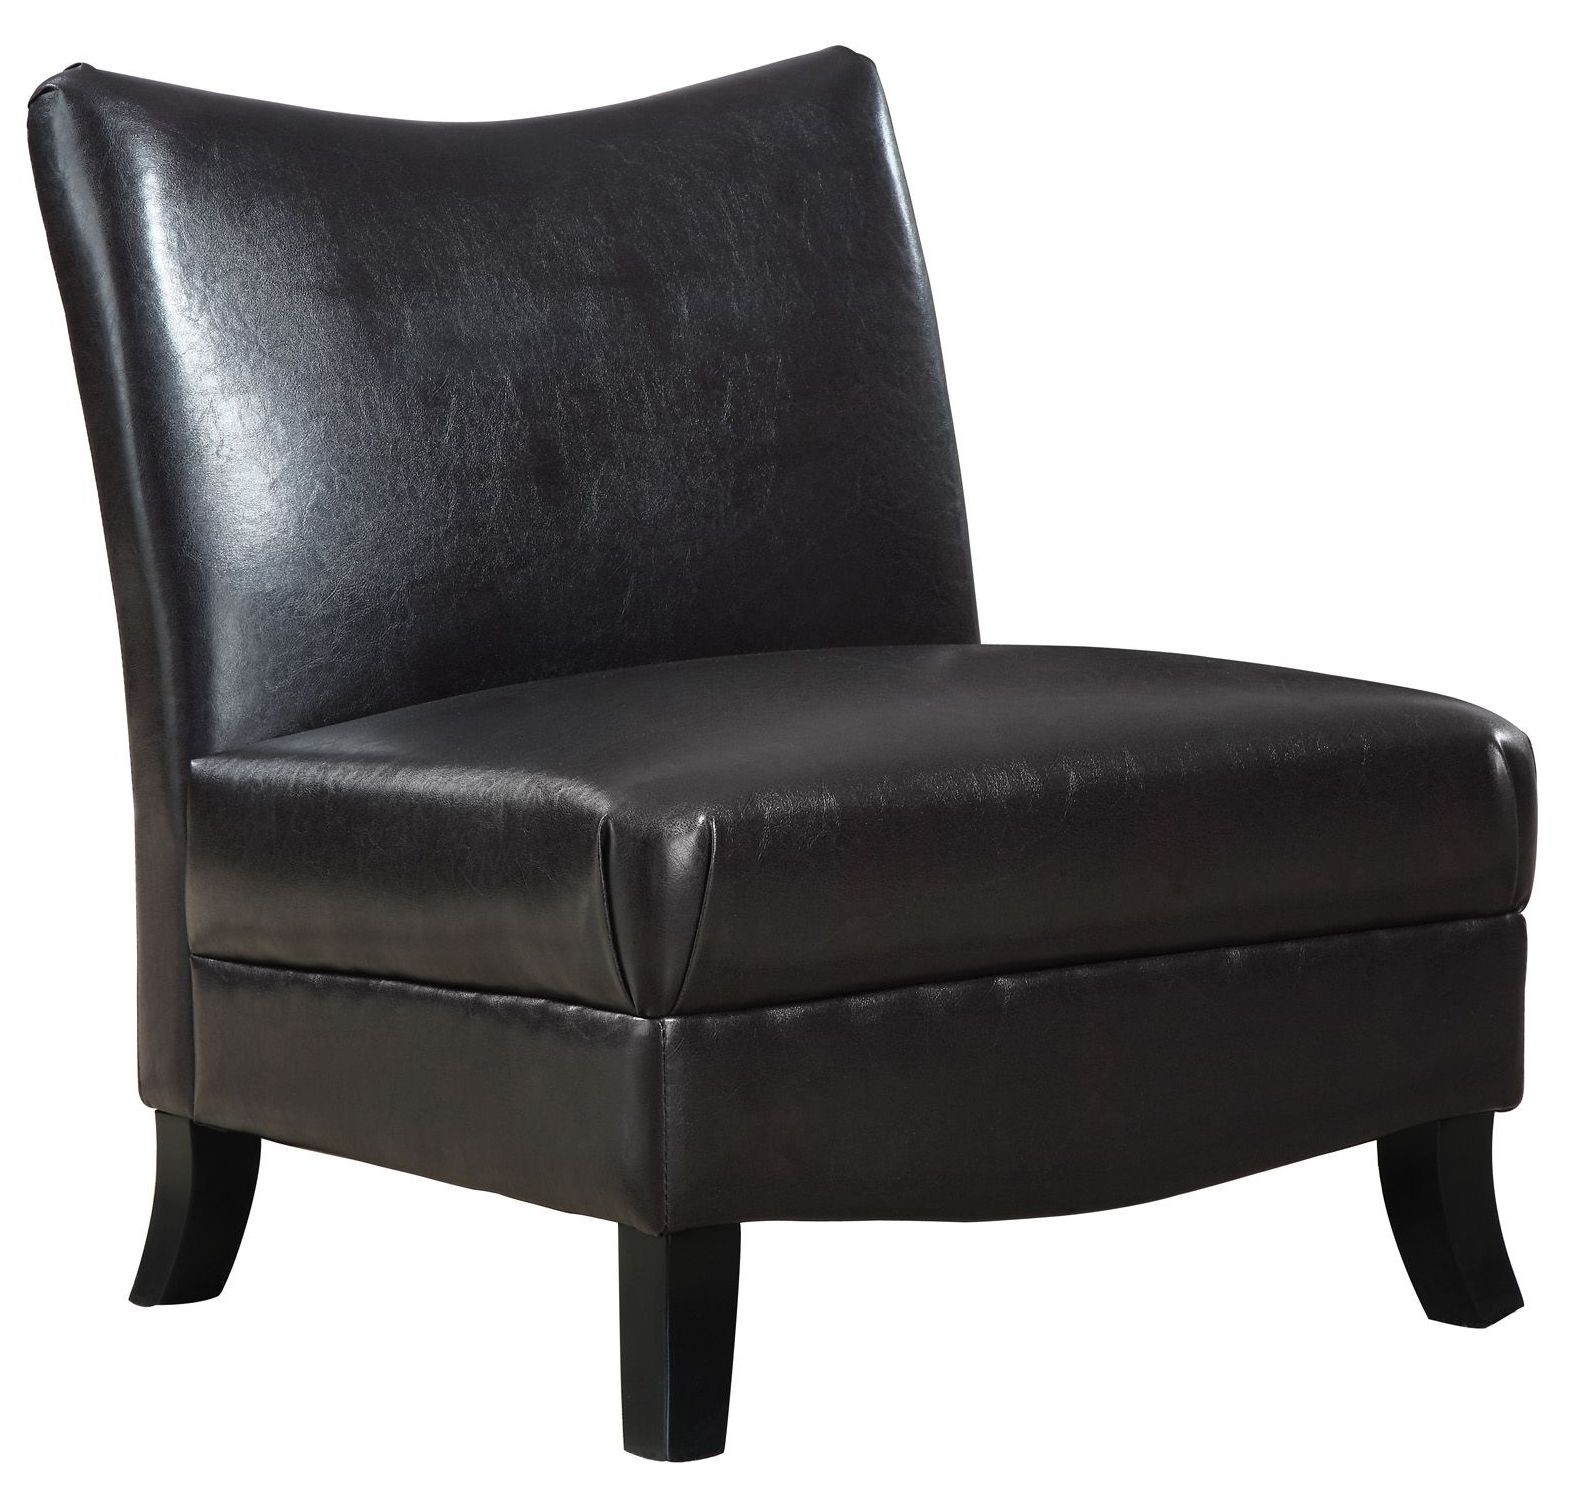 Tan Accent Chair 8046 Dark Brown Accent Chair From Monarch I 8046